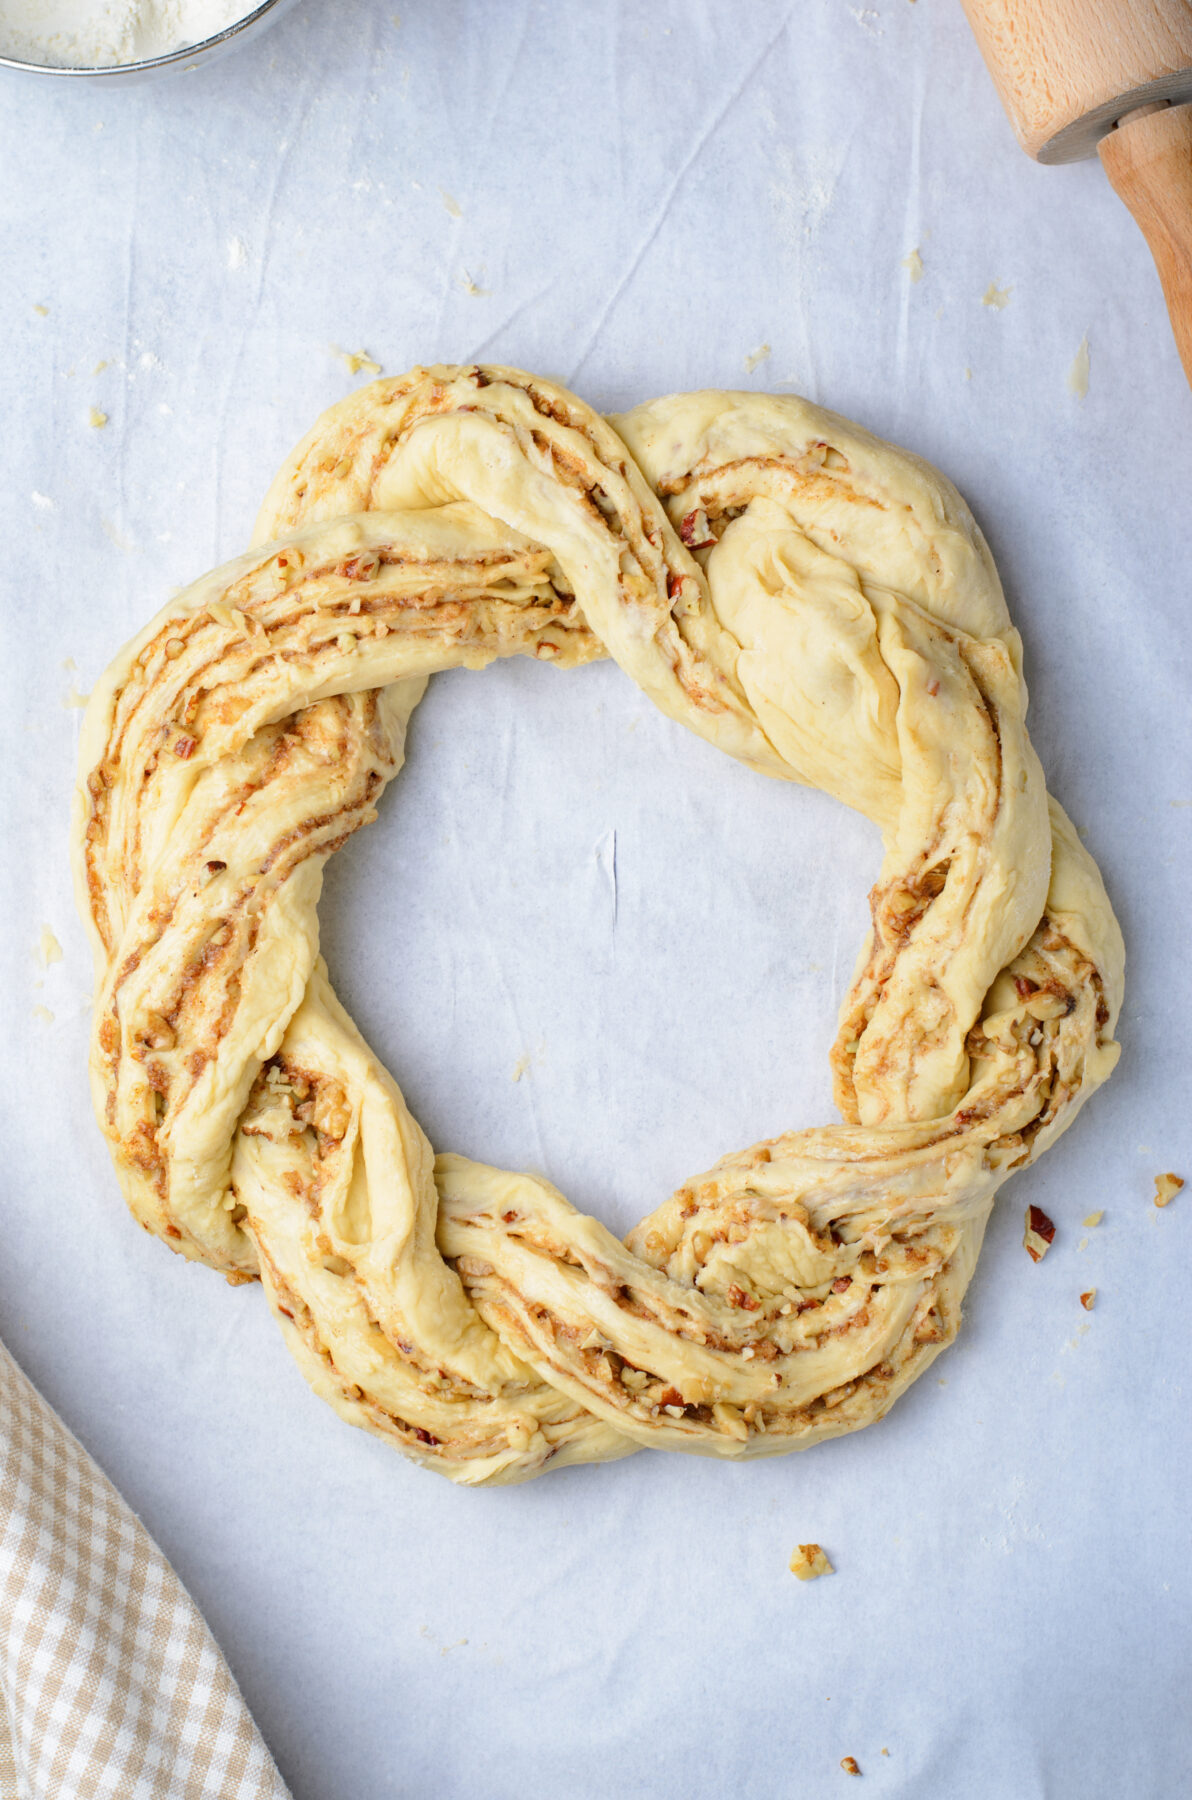 The two ends of the twists formed together to make a wreath.